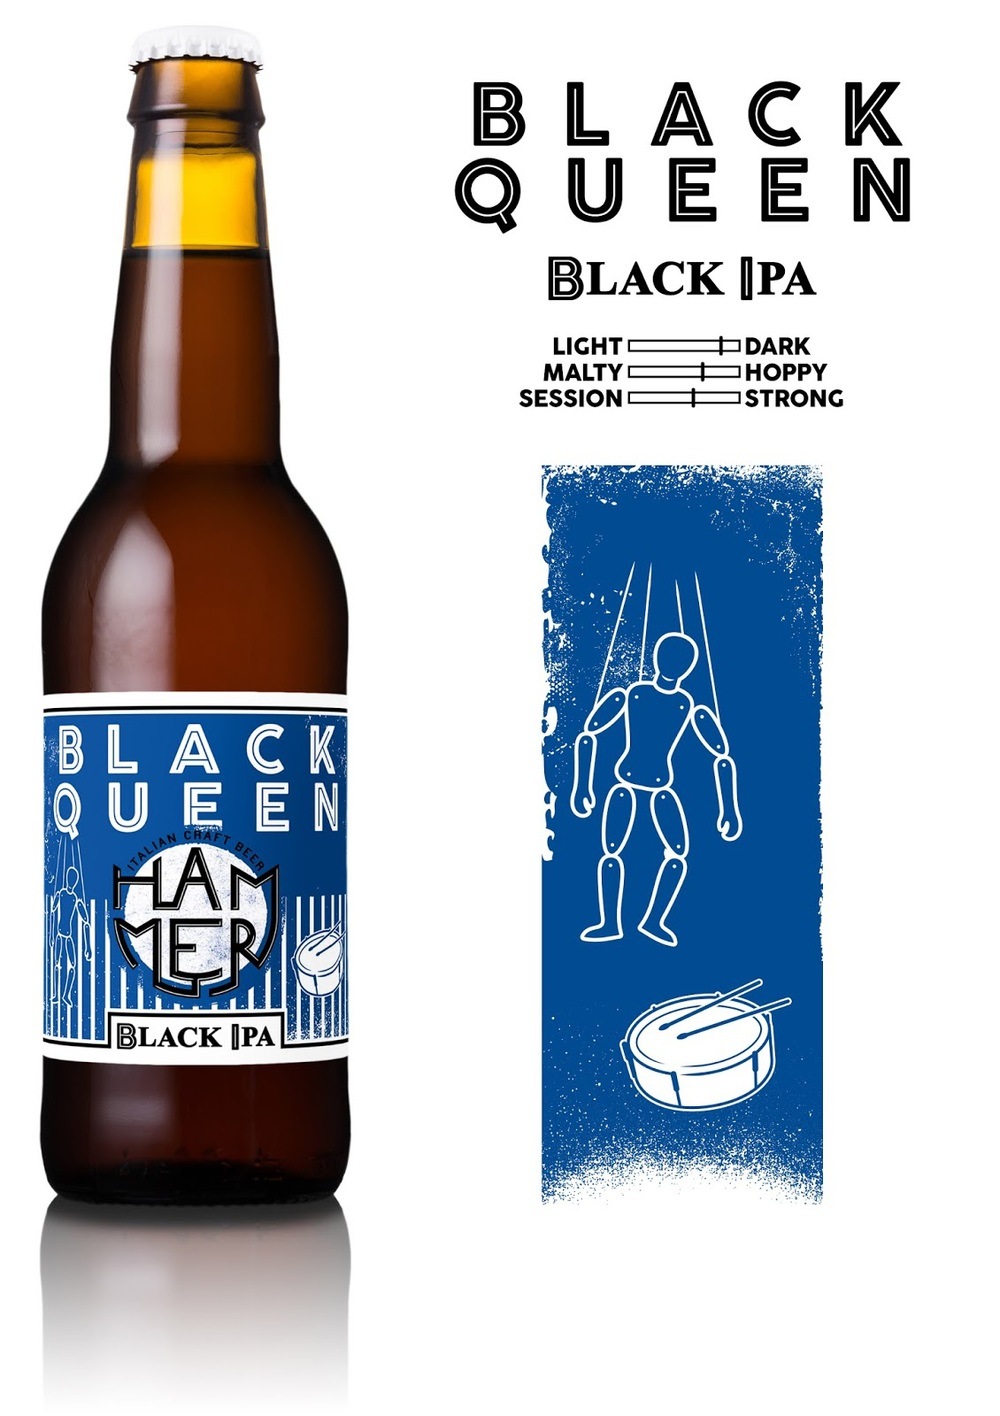 06_BLACK-QUEEN_black-ipa.jpg